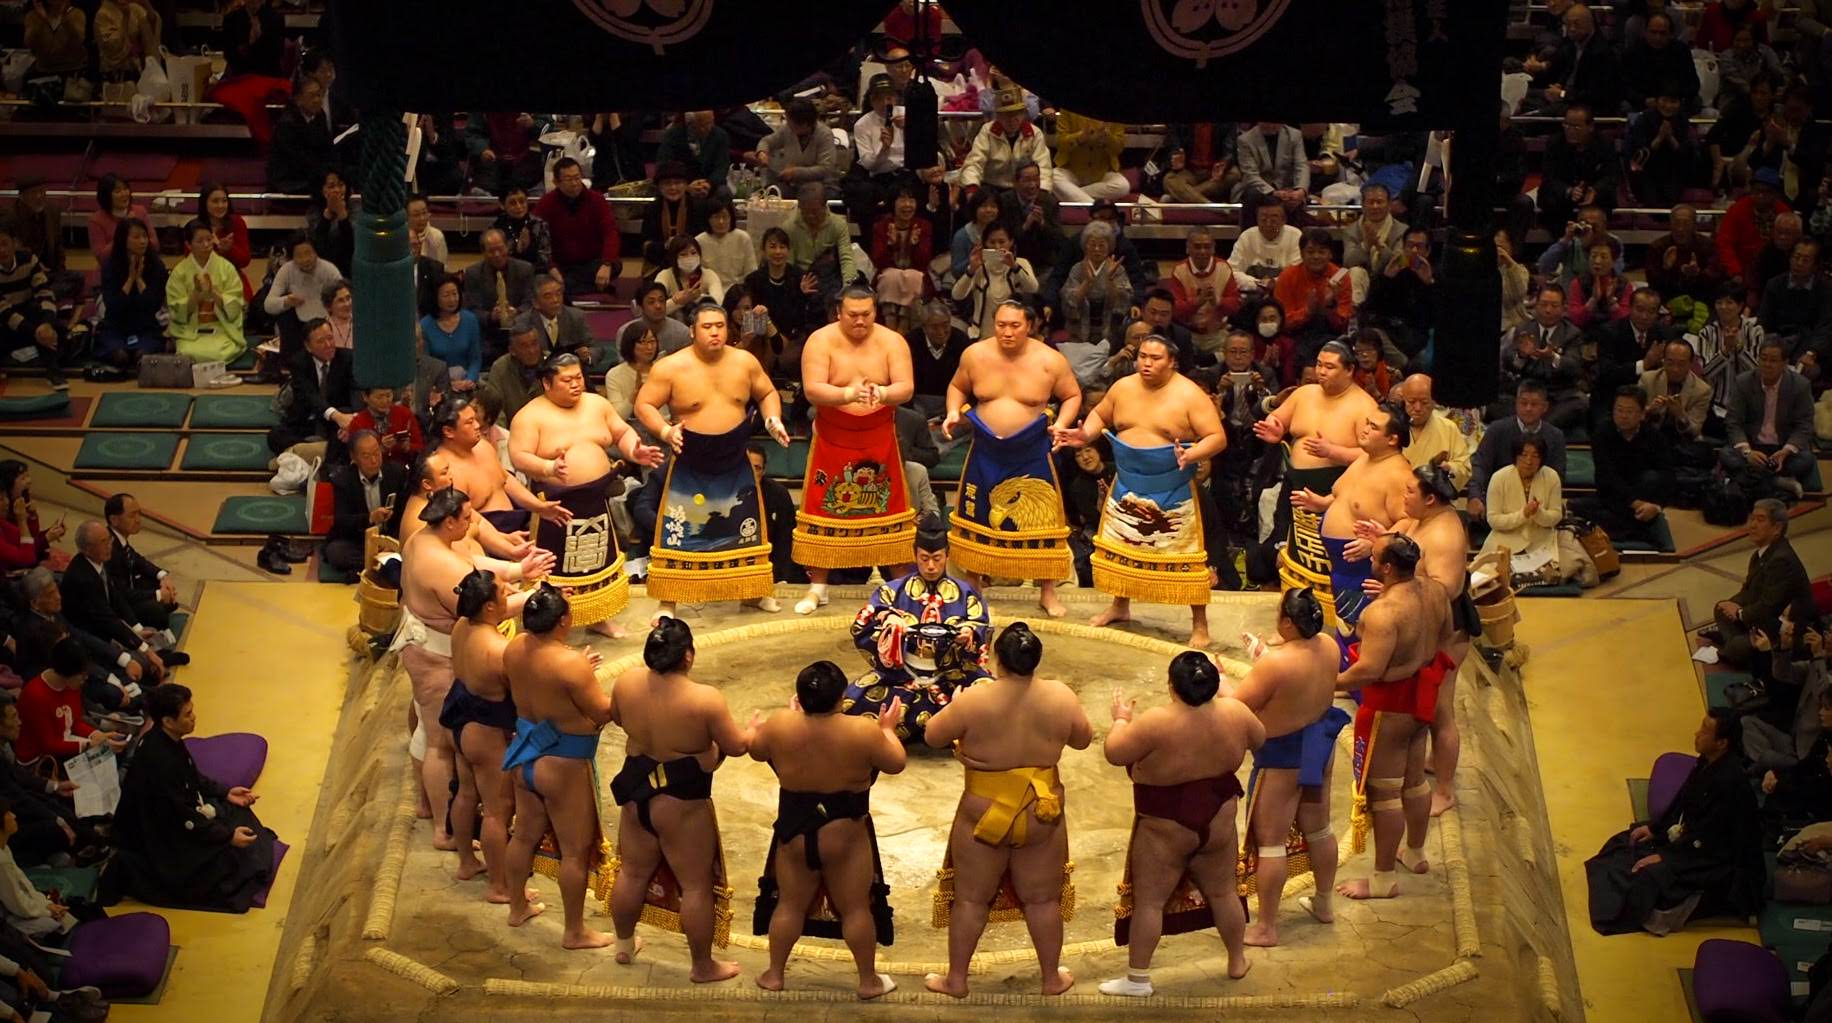 The Makuuchi (top division) ring entering ceremony